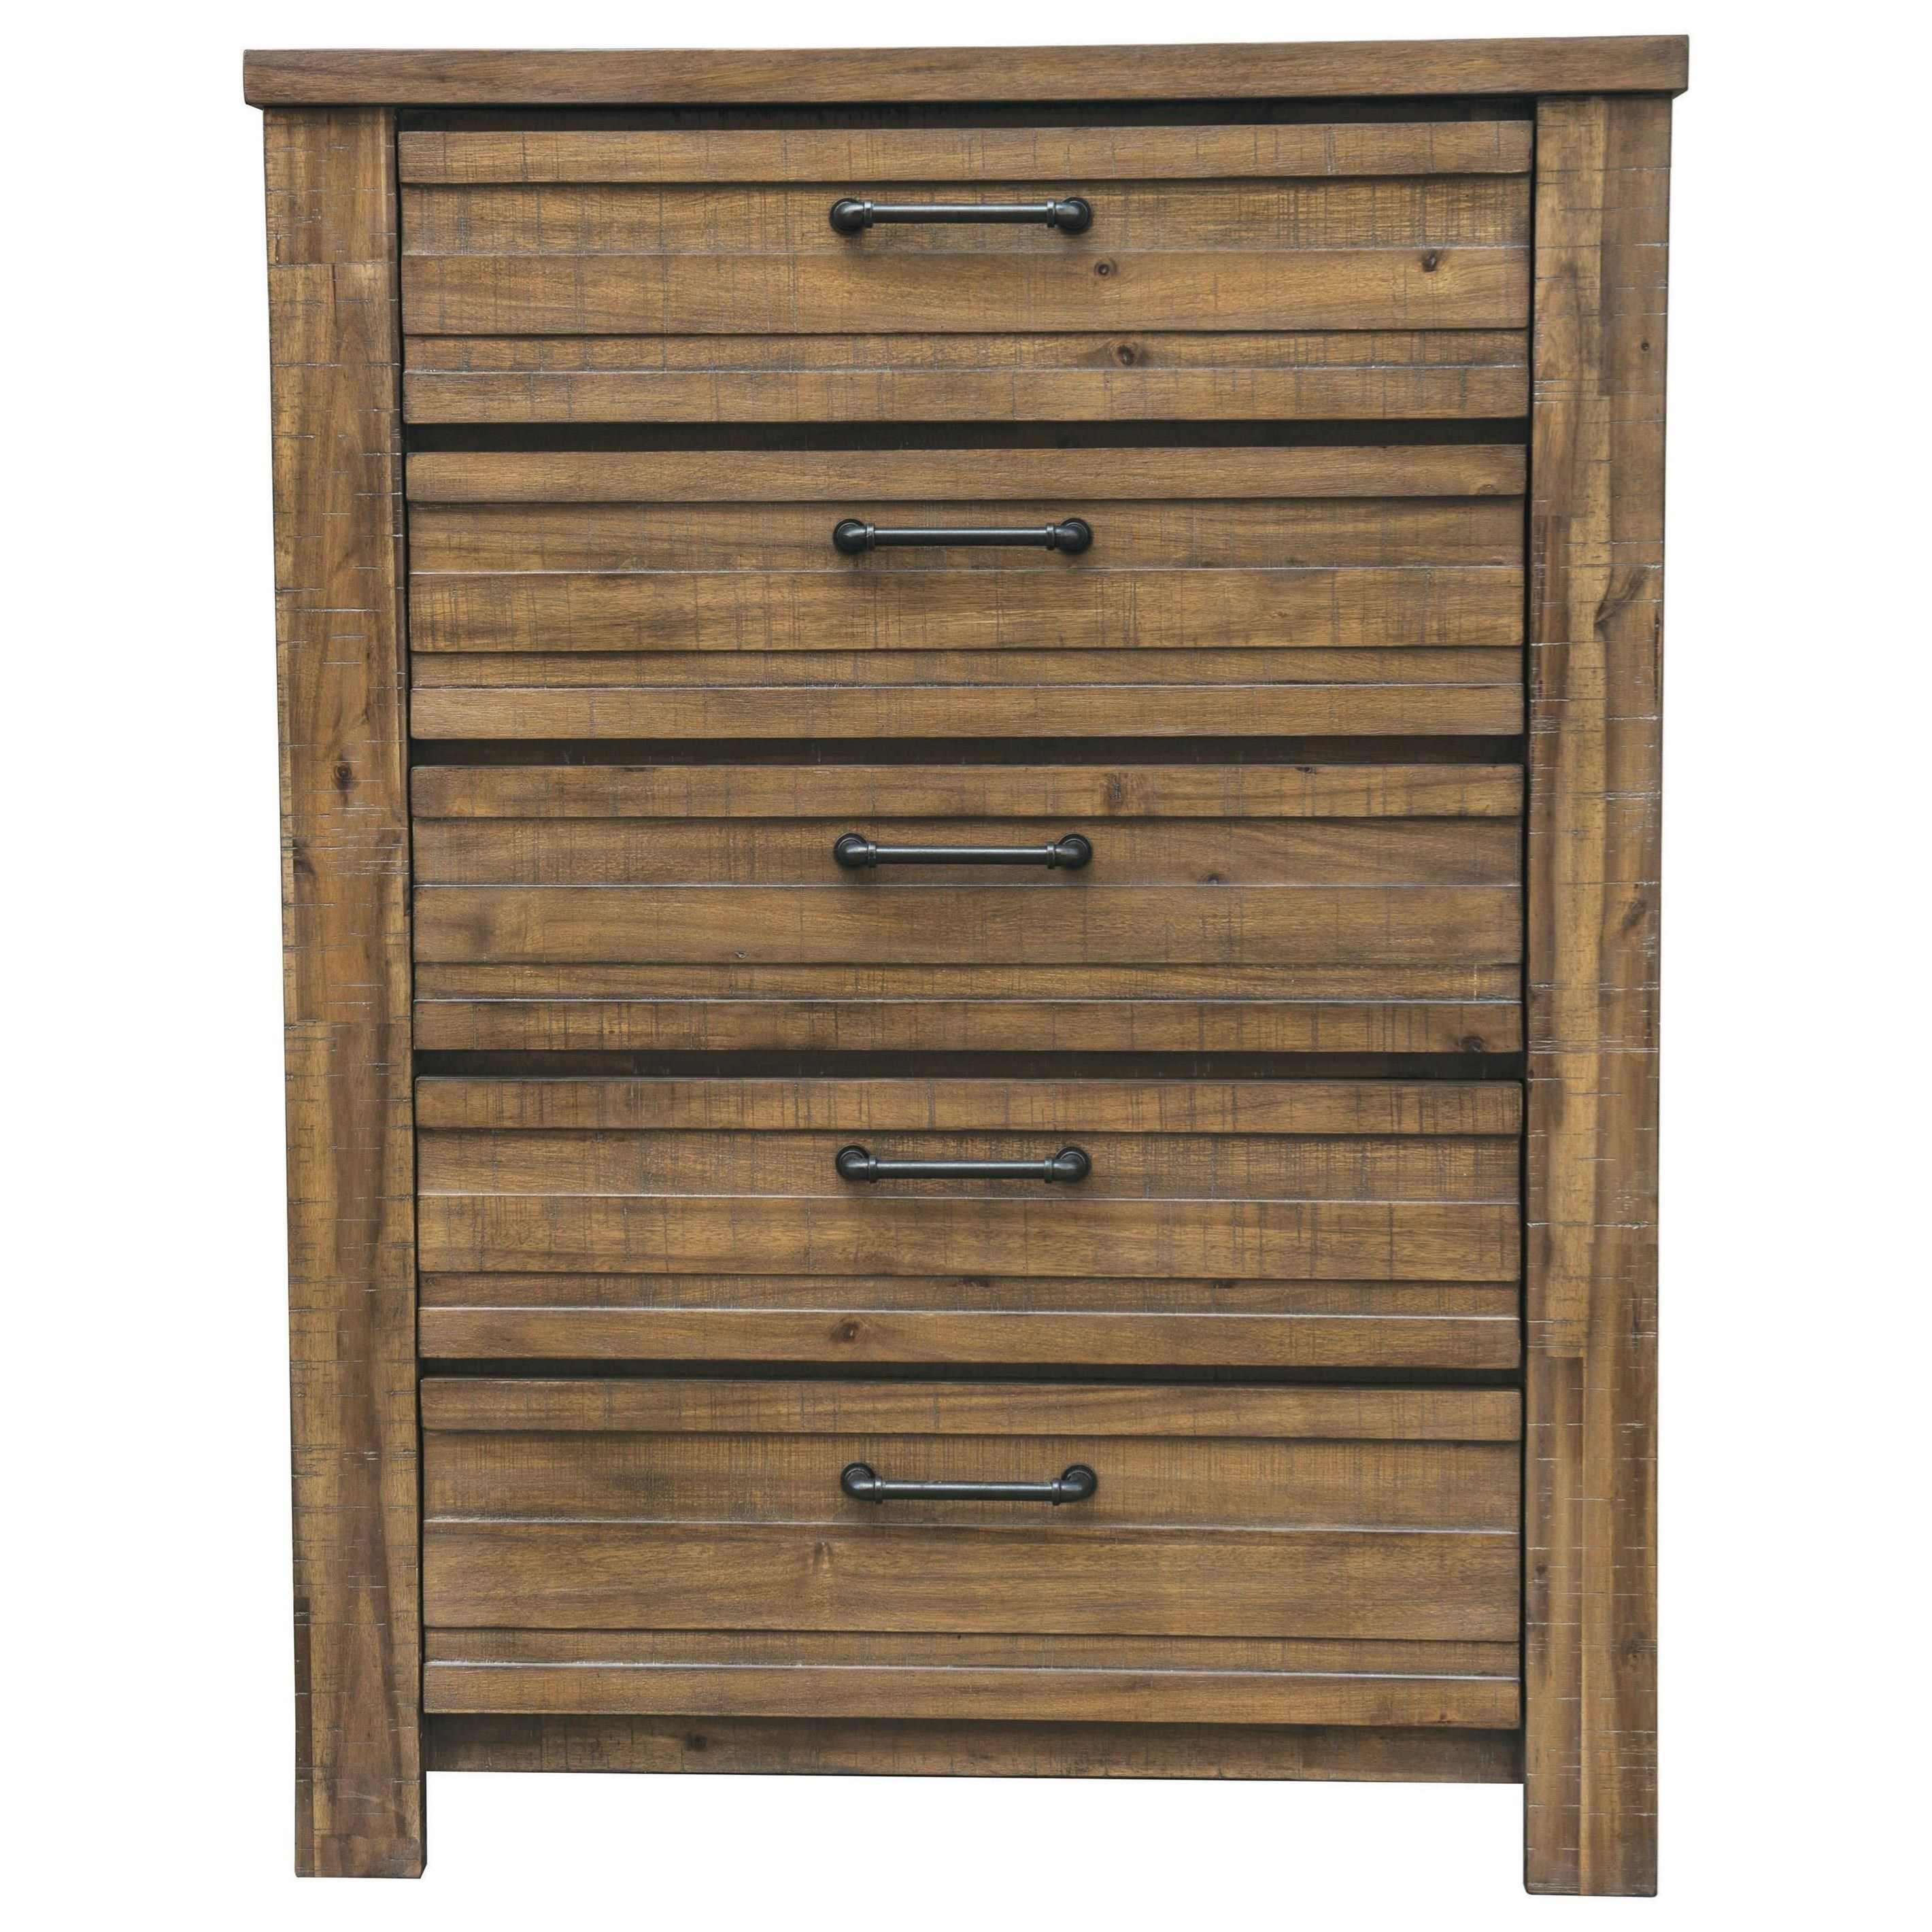 Rutherford Rutherford Drawer Chest by Samuel Lawrence at Morris Home